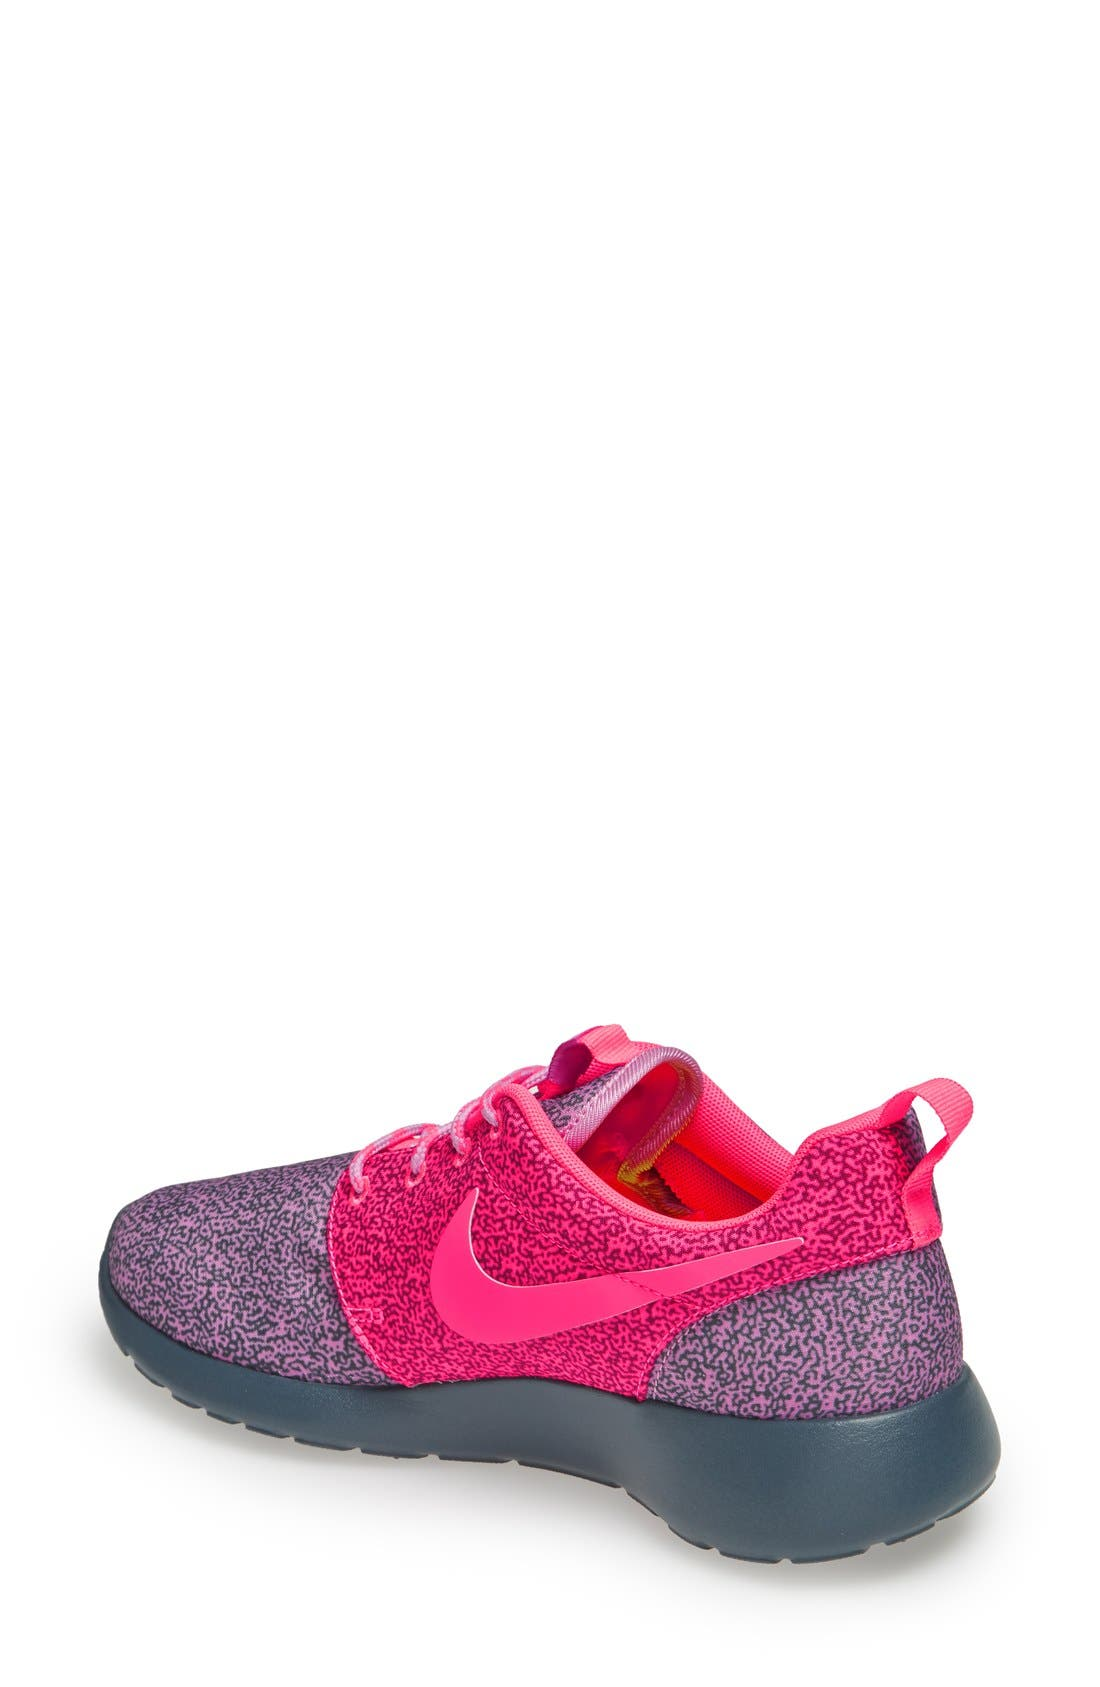 Alternate Image 2  - Nike 'Roshe Run' Print Sneaker (Women)